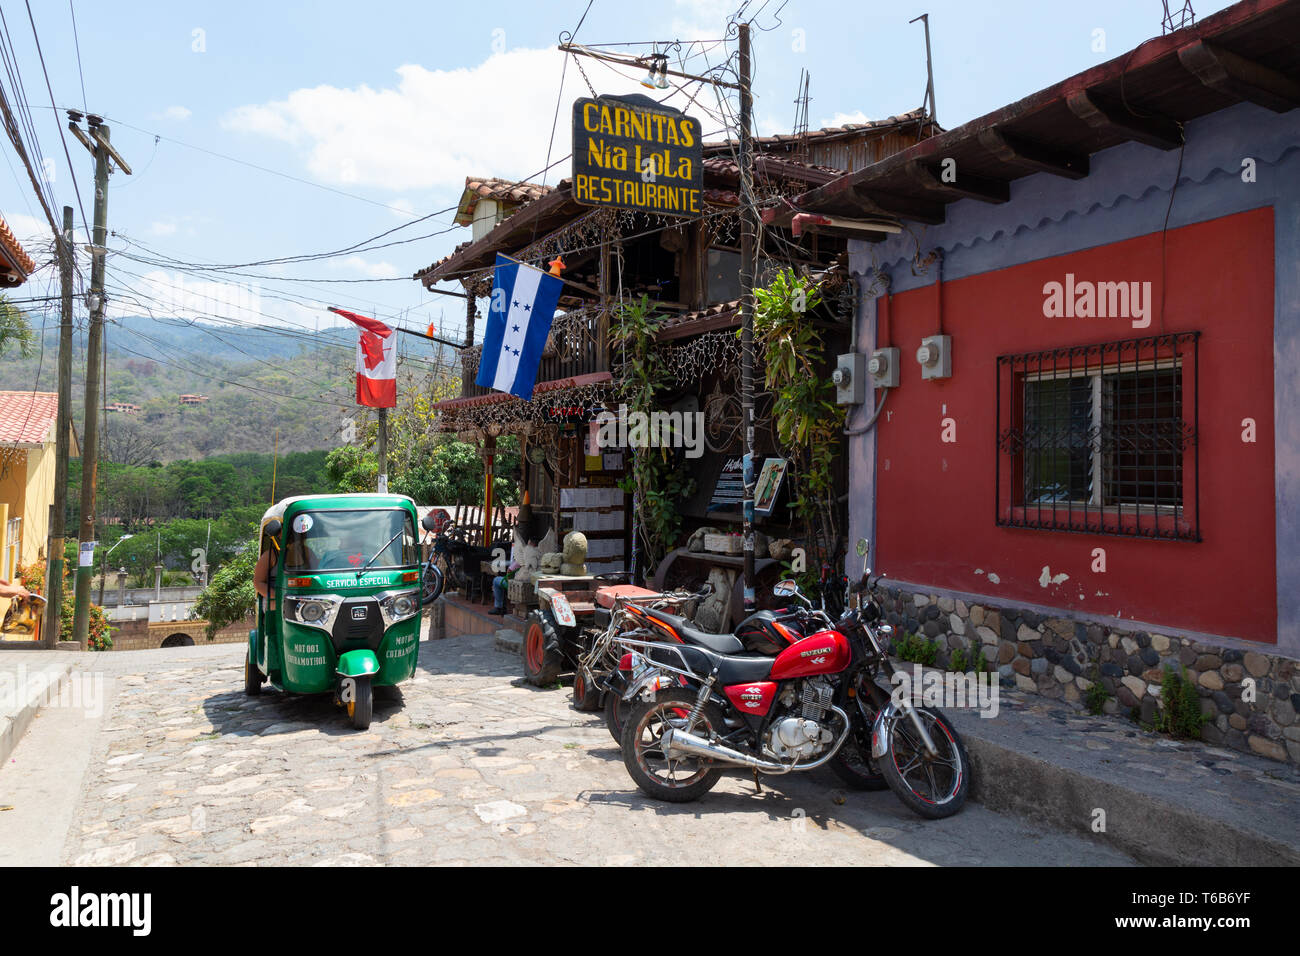 Street scene in the colourful town of Copan Ruinas, near the Copan archaeological site, Honduras, Central America - Stock Image